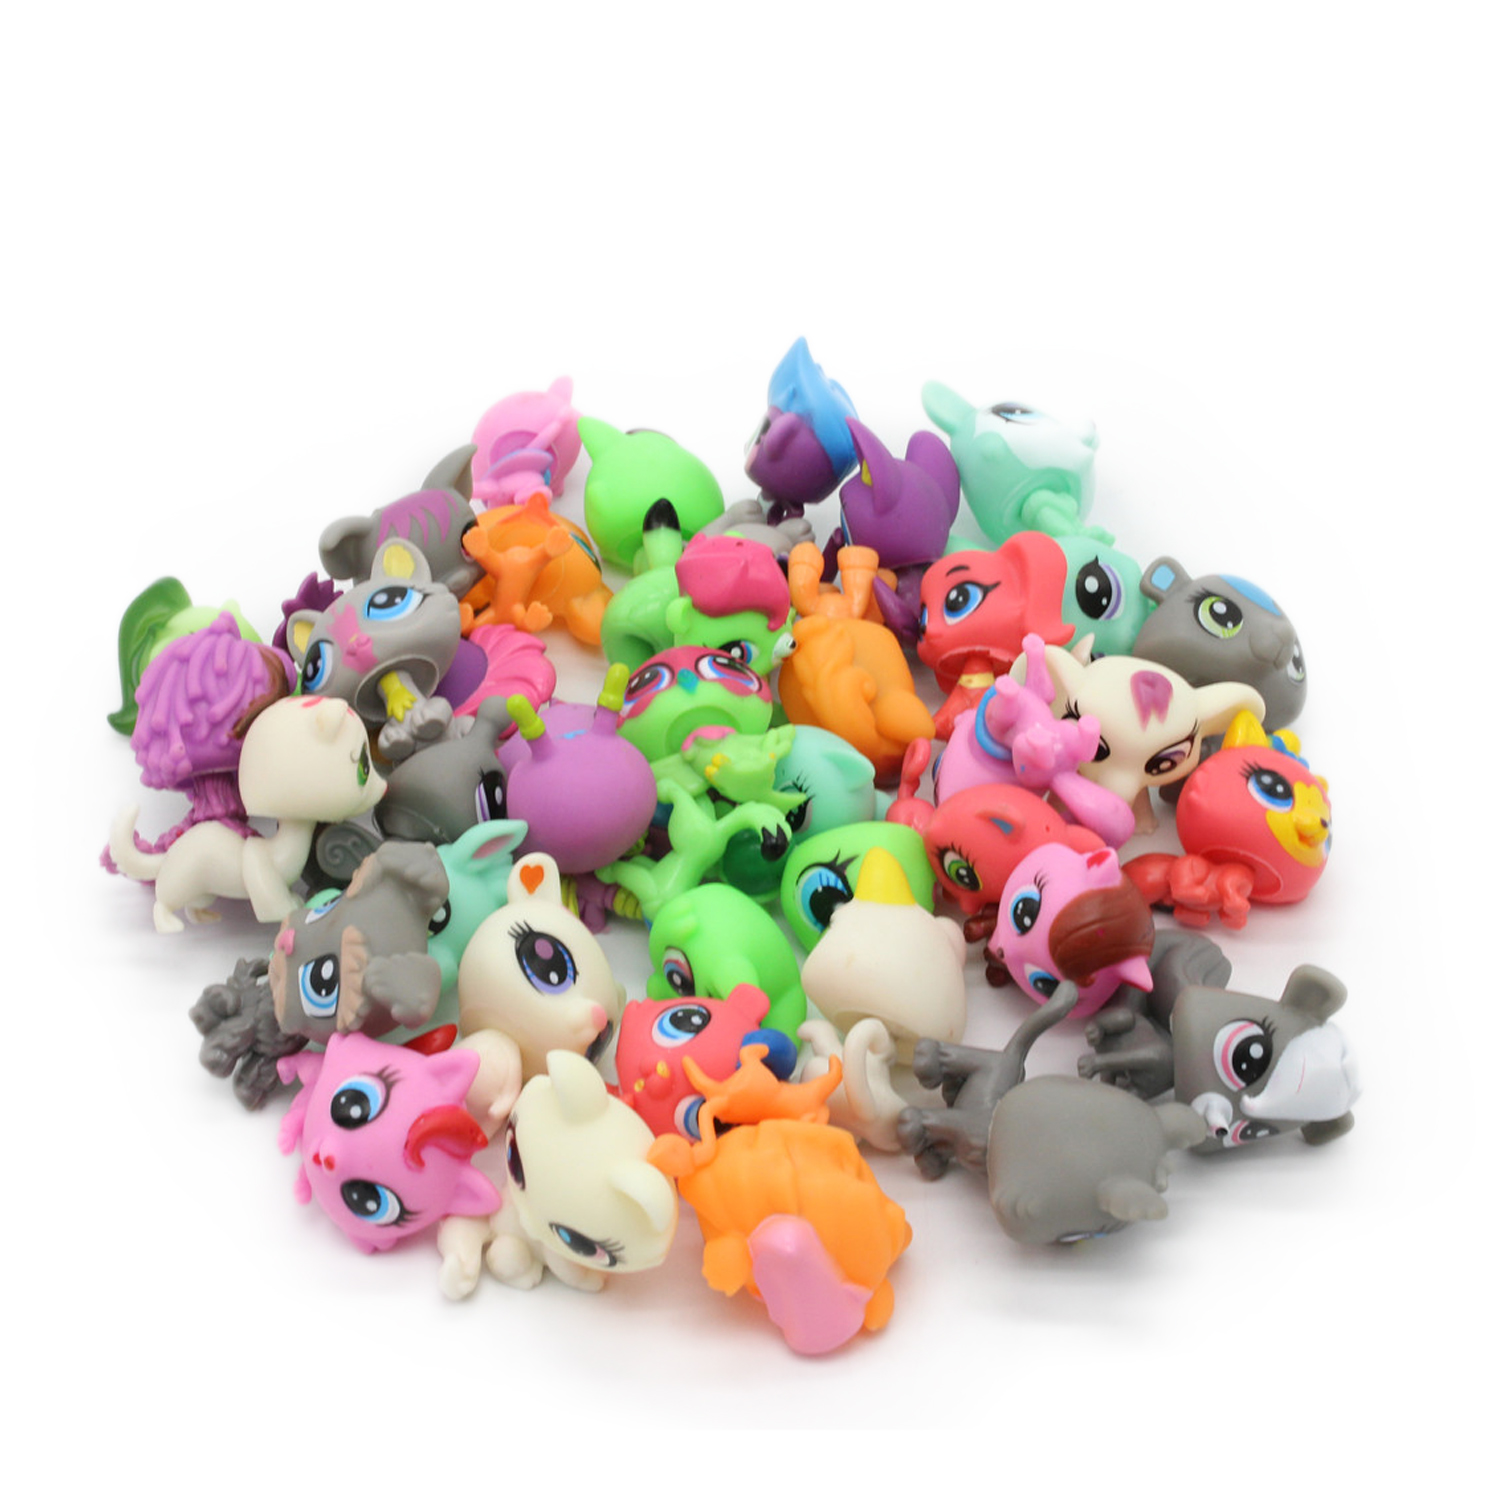 LPS New Style lps Toy bag 32Pcs/bag Little Pet Shop Mini Toy Animal Cat patrulla canina dog Action Figures Kids toys